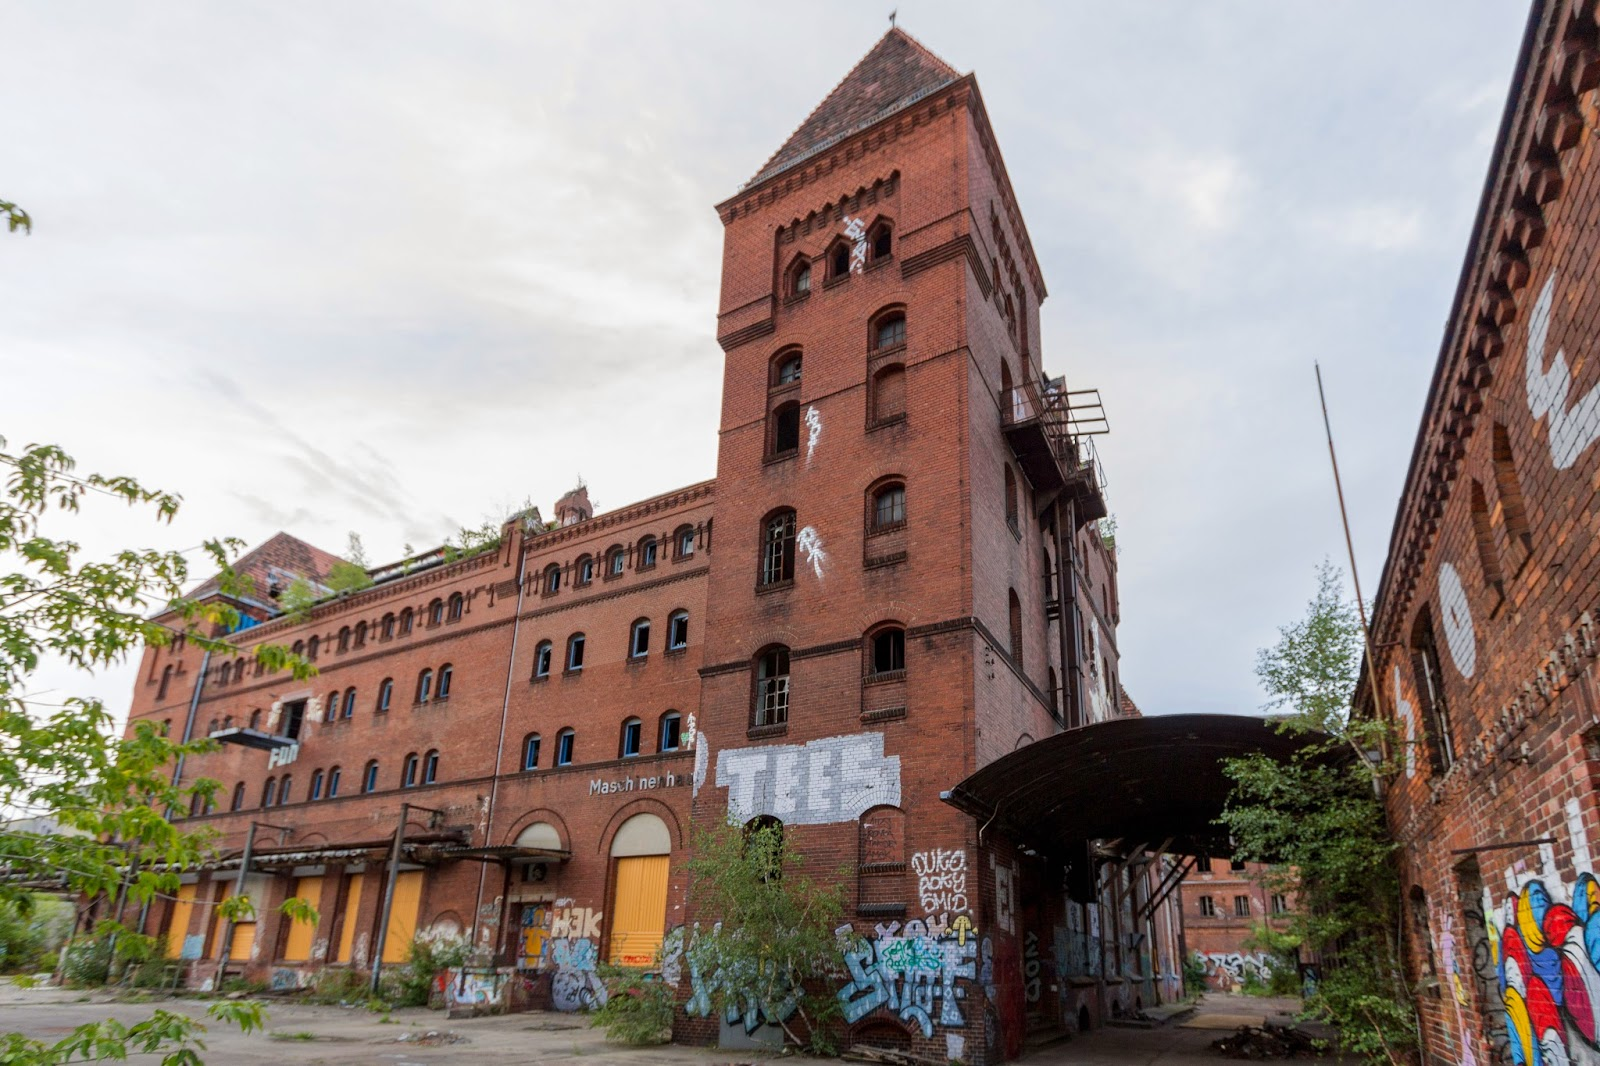 b renquell brauerei brewery abandoned by bears abandoned berlin. Black Bedroom Furniture Sets. Home Design Ideas